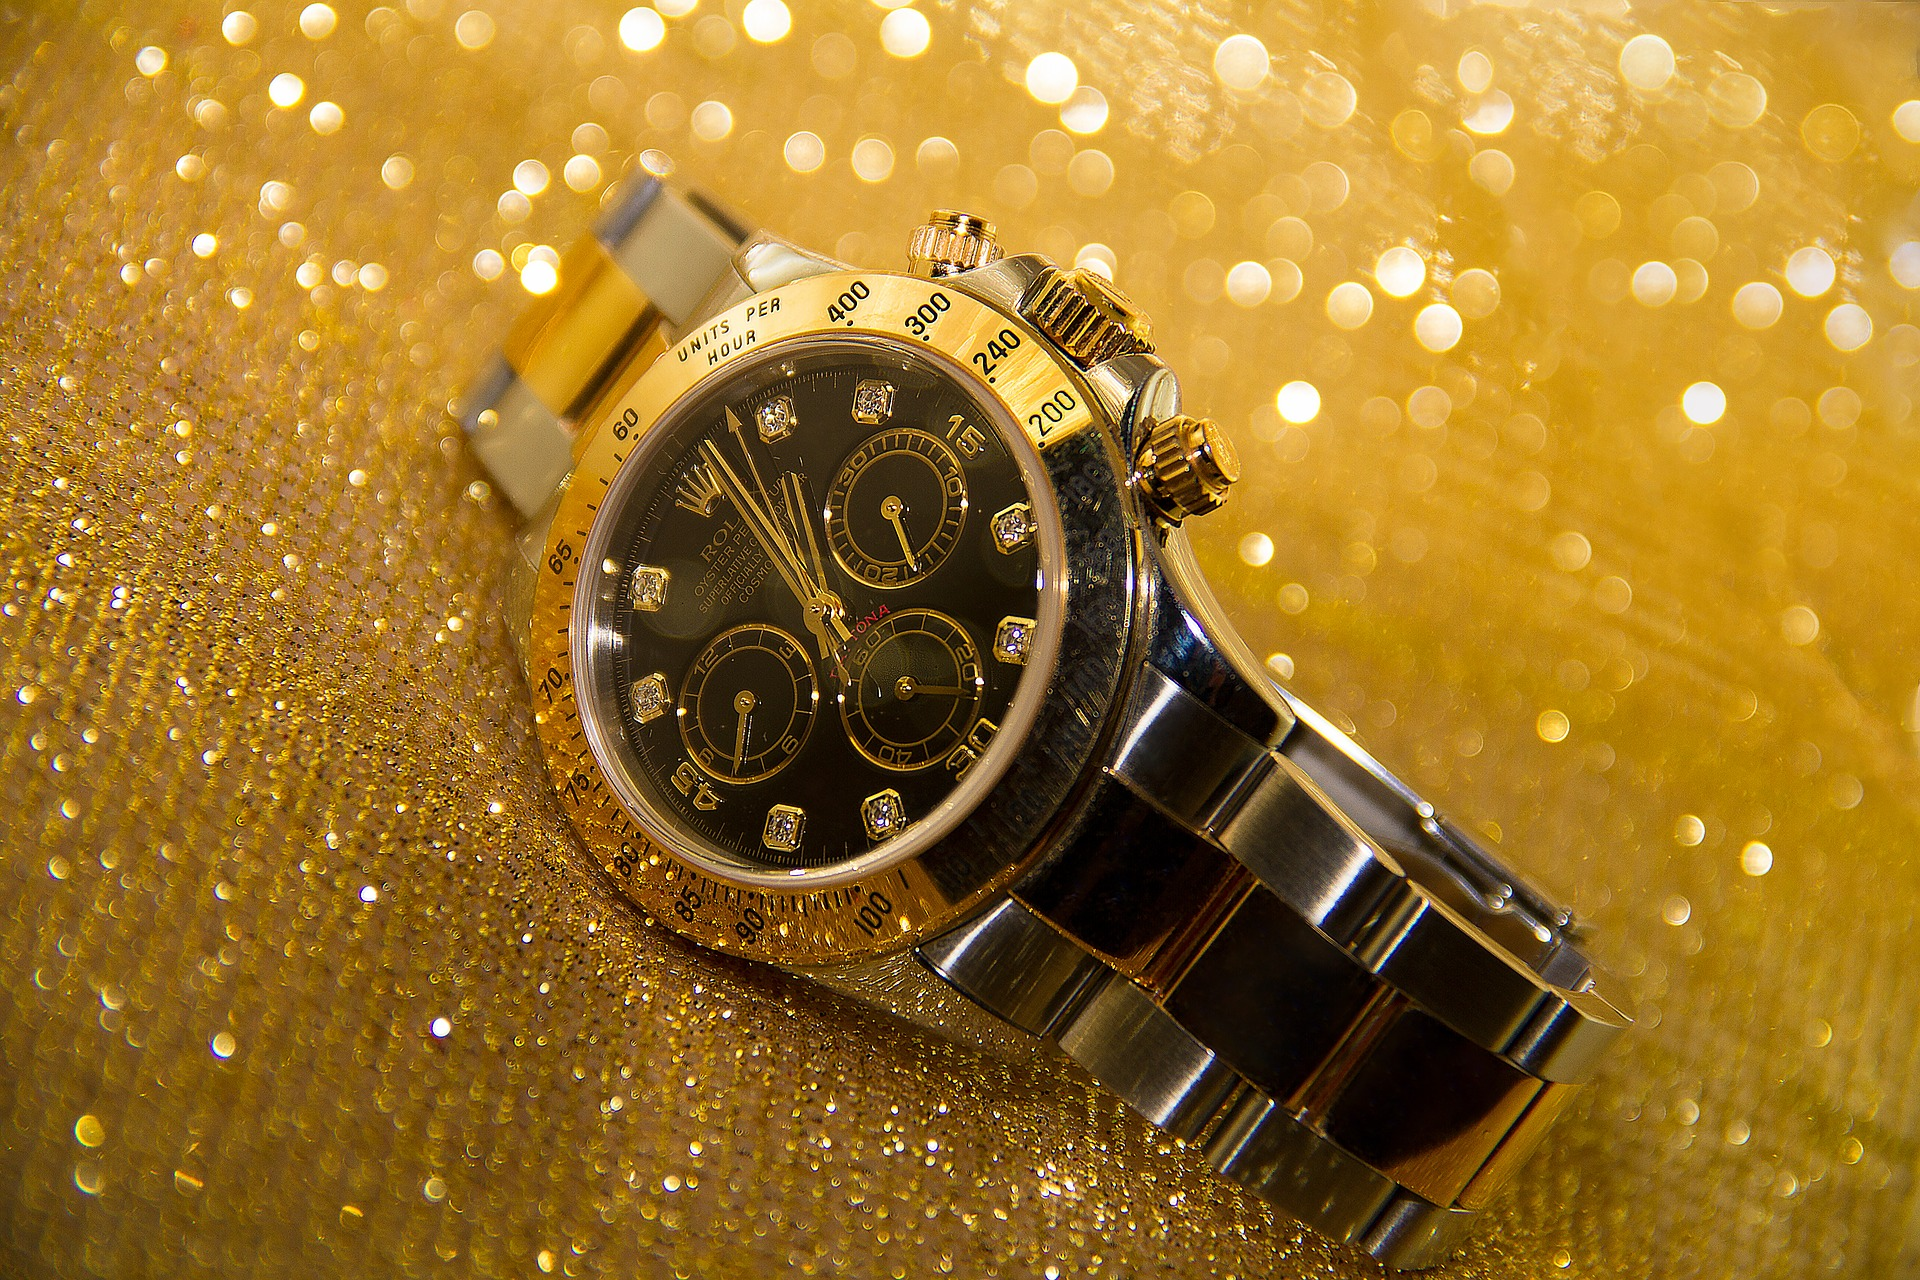 Most Interesting Facts About Rolex Daytona